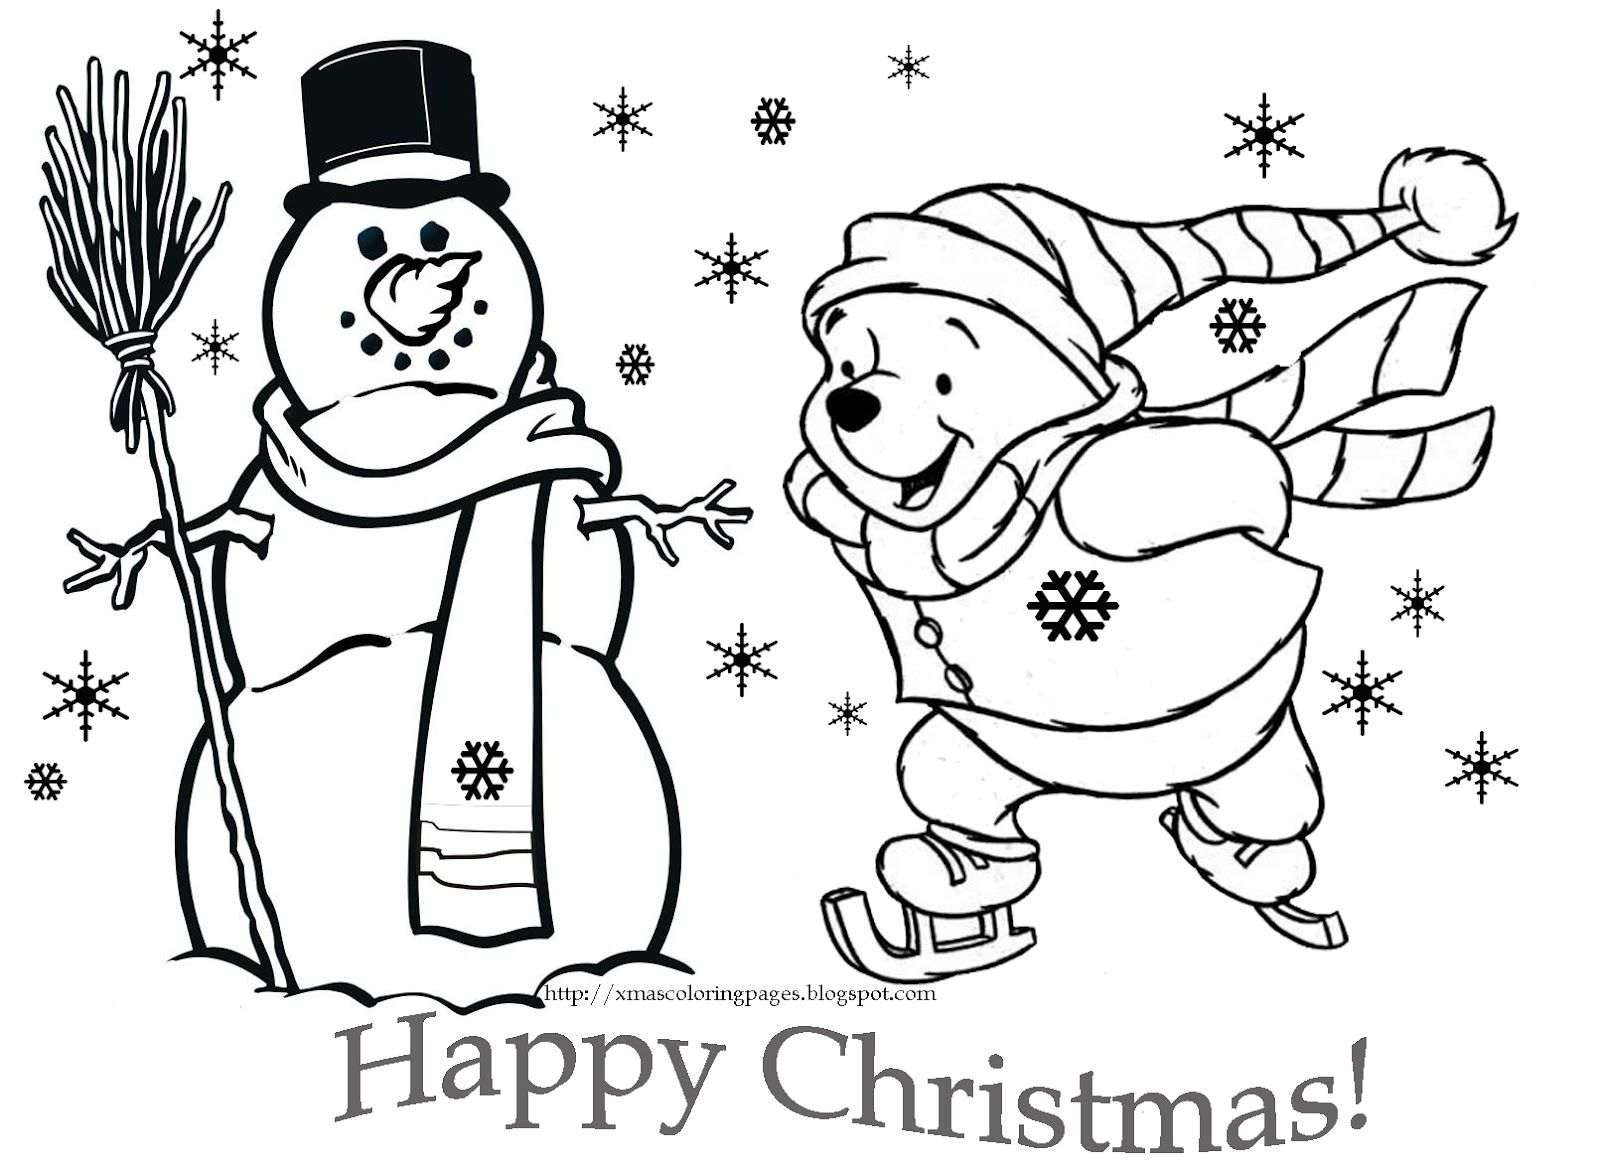 winnie the pooh christmas coloring pages winnie+the+pooh